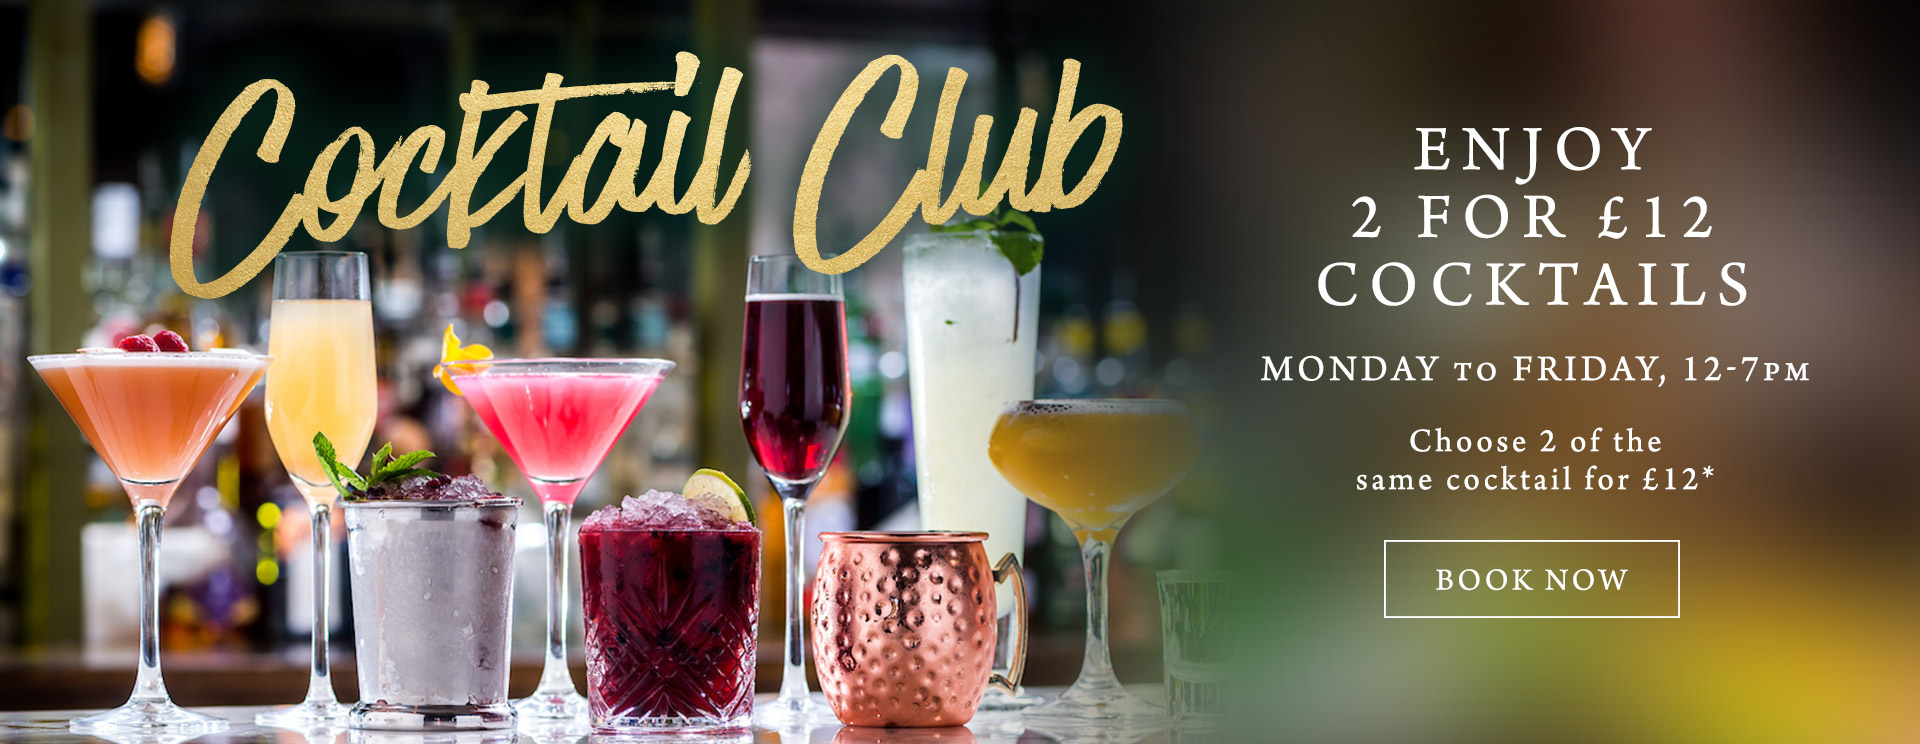 2 for £12 cocktails at The Old Bulls Head